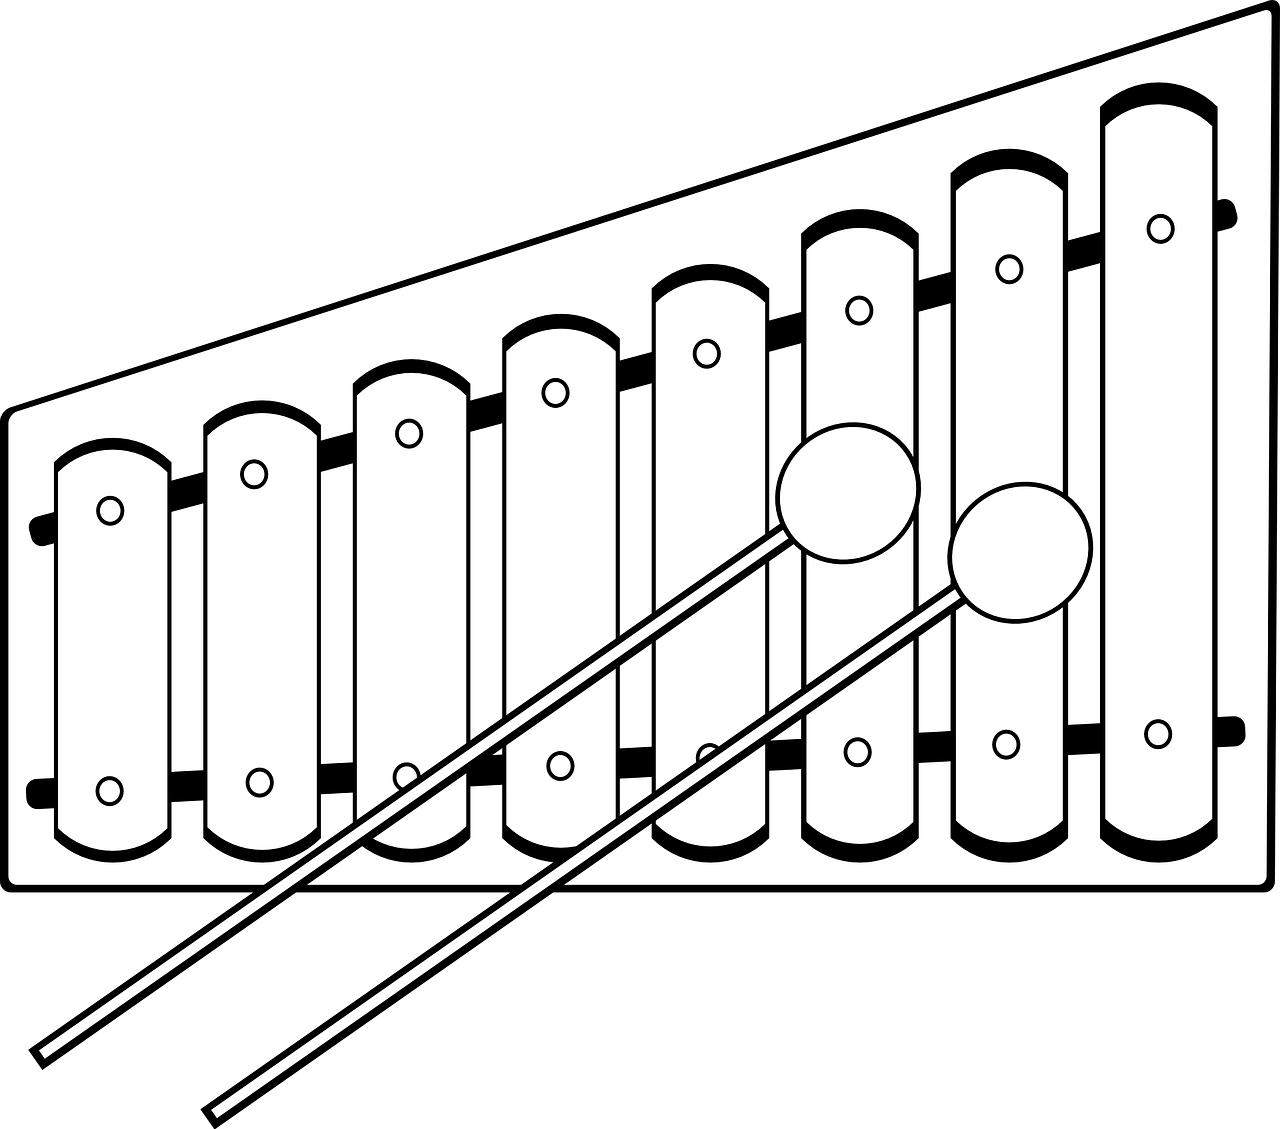 Xylophone Musical Instrument Free Vector Graphic On Pixabay